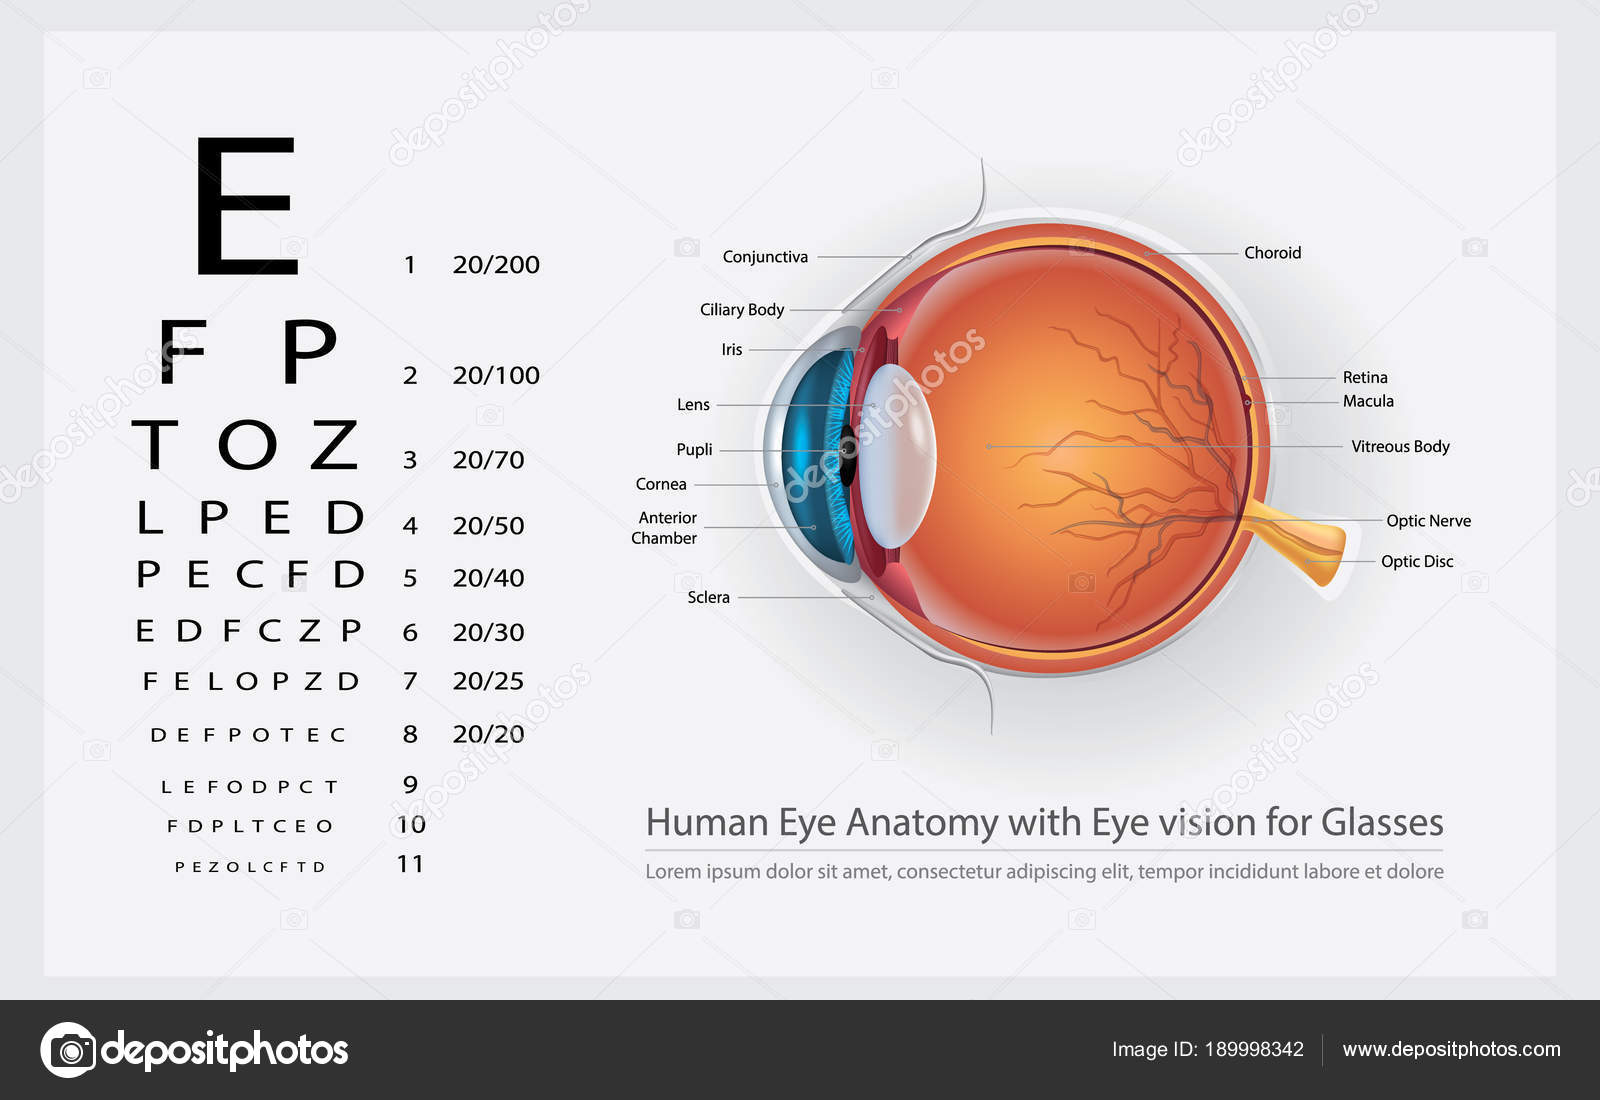 Human Eye Anatomy Eye Vision Glasses Vector Illustration — Stock ...